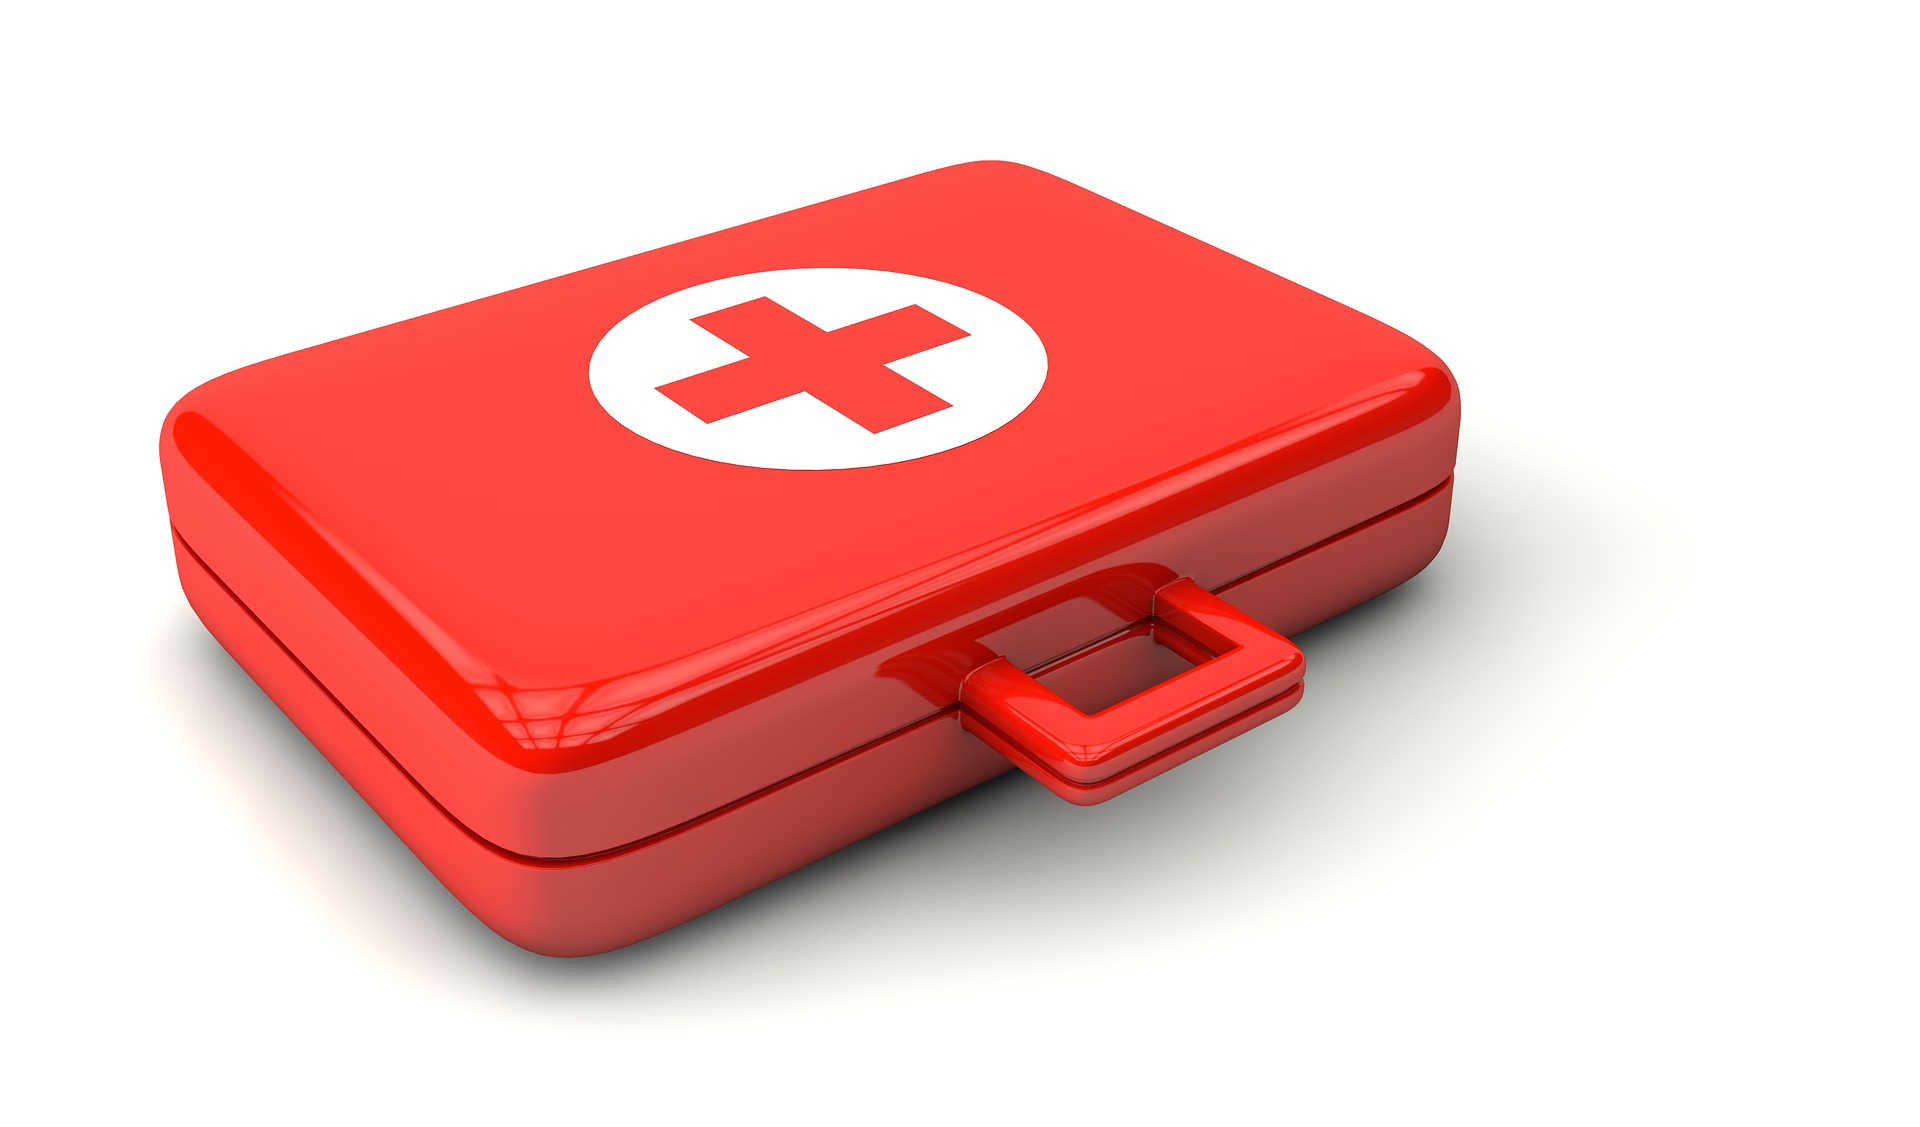 First aid courses online uk 50mg